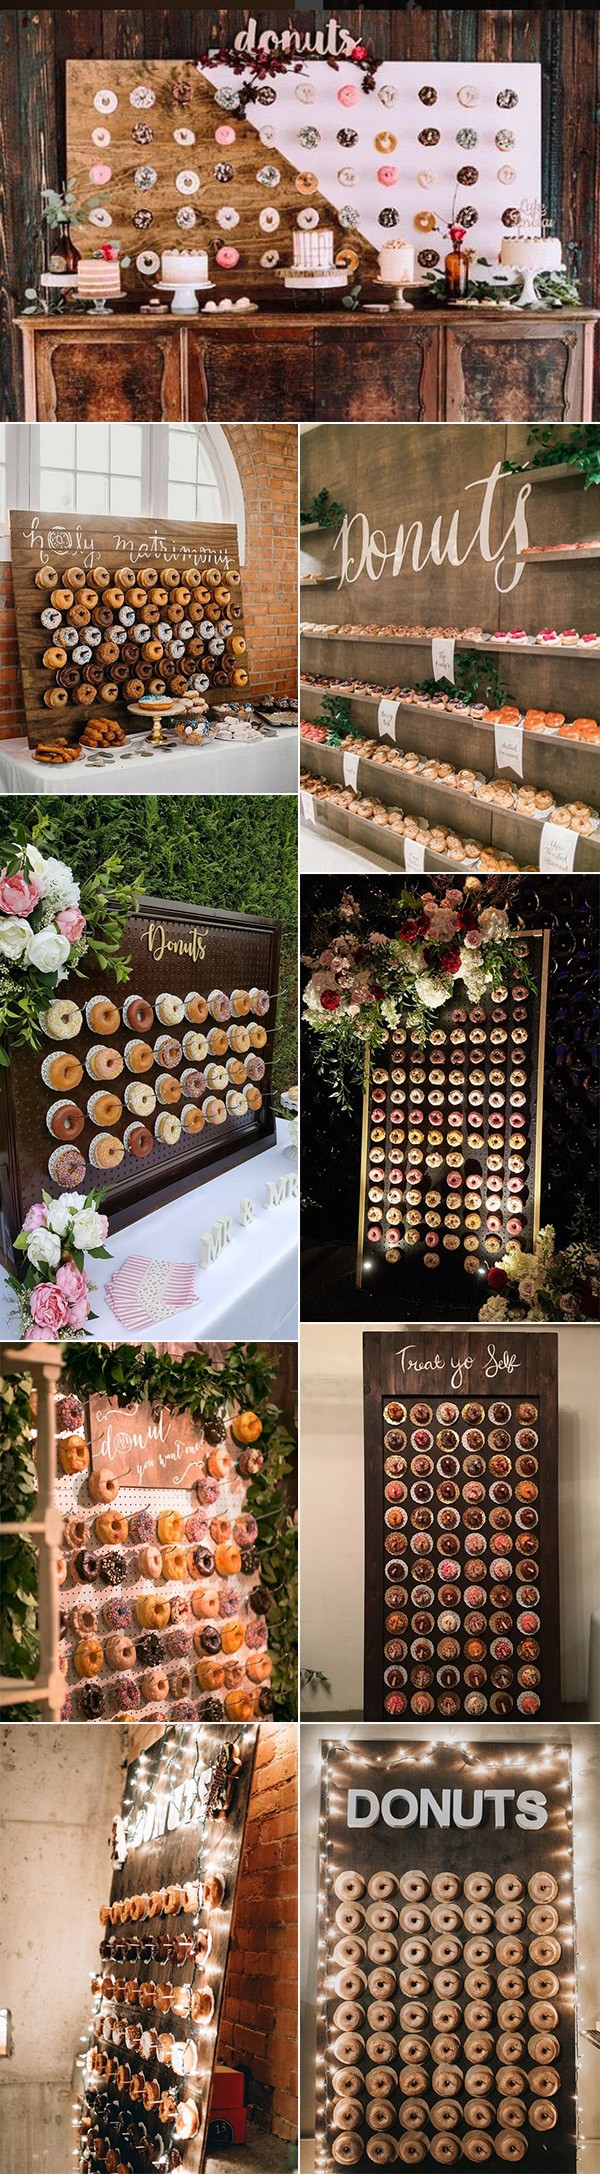 chic rustic wedding donuts walls decoration ideas